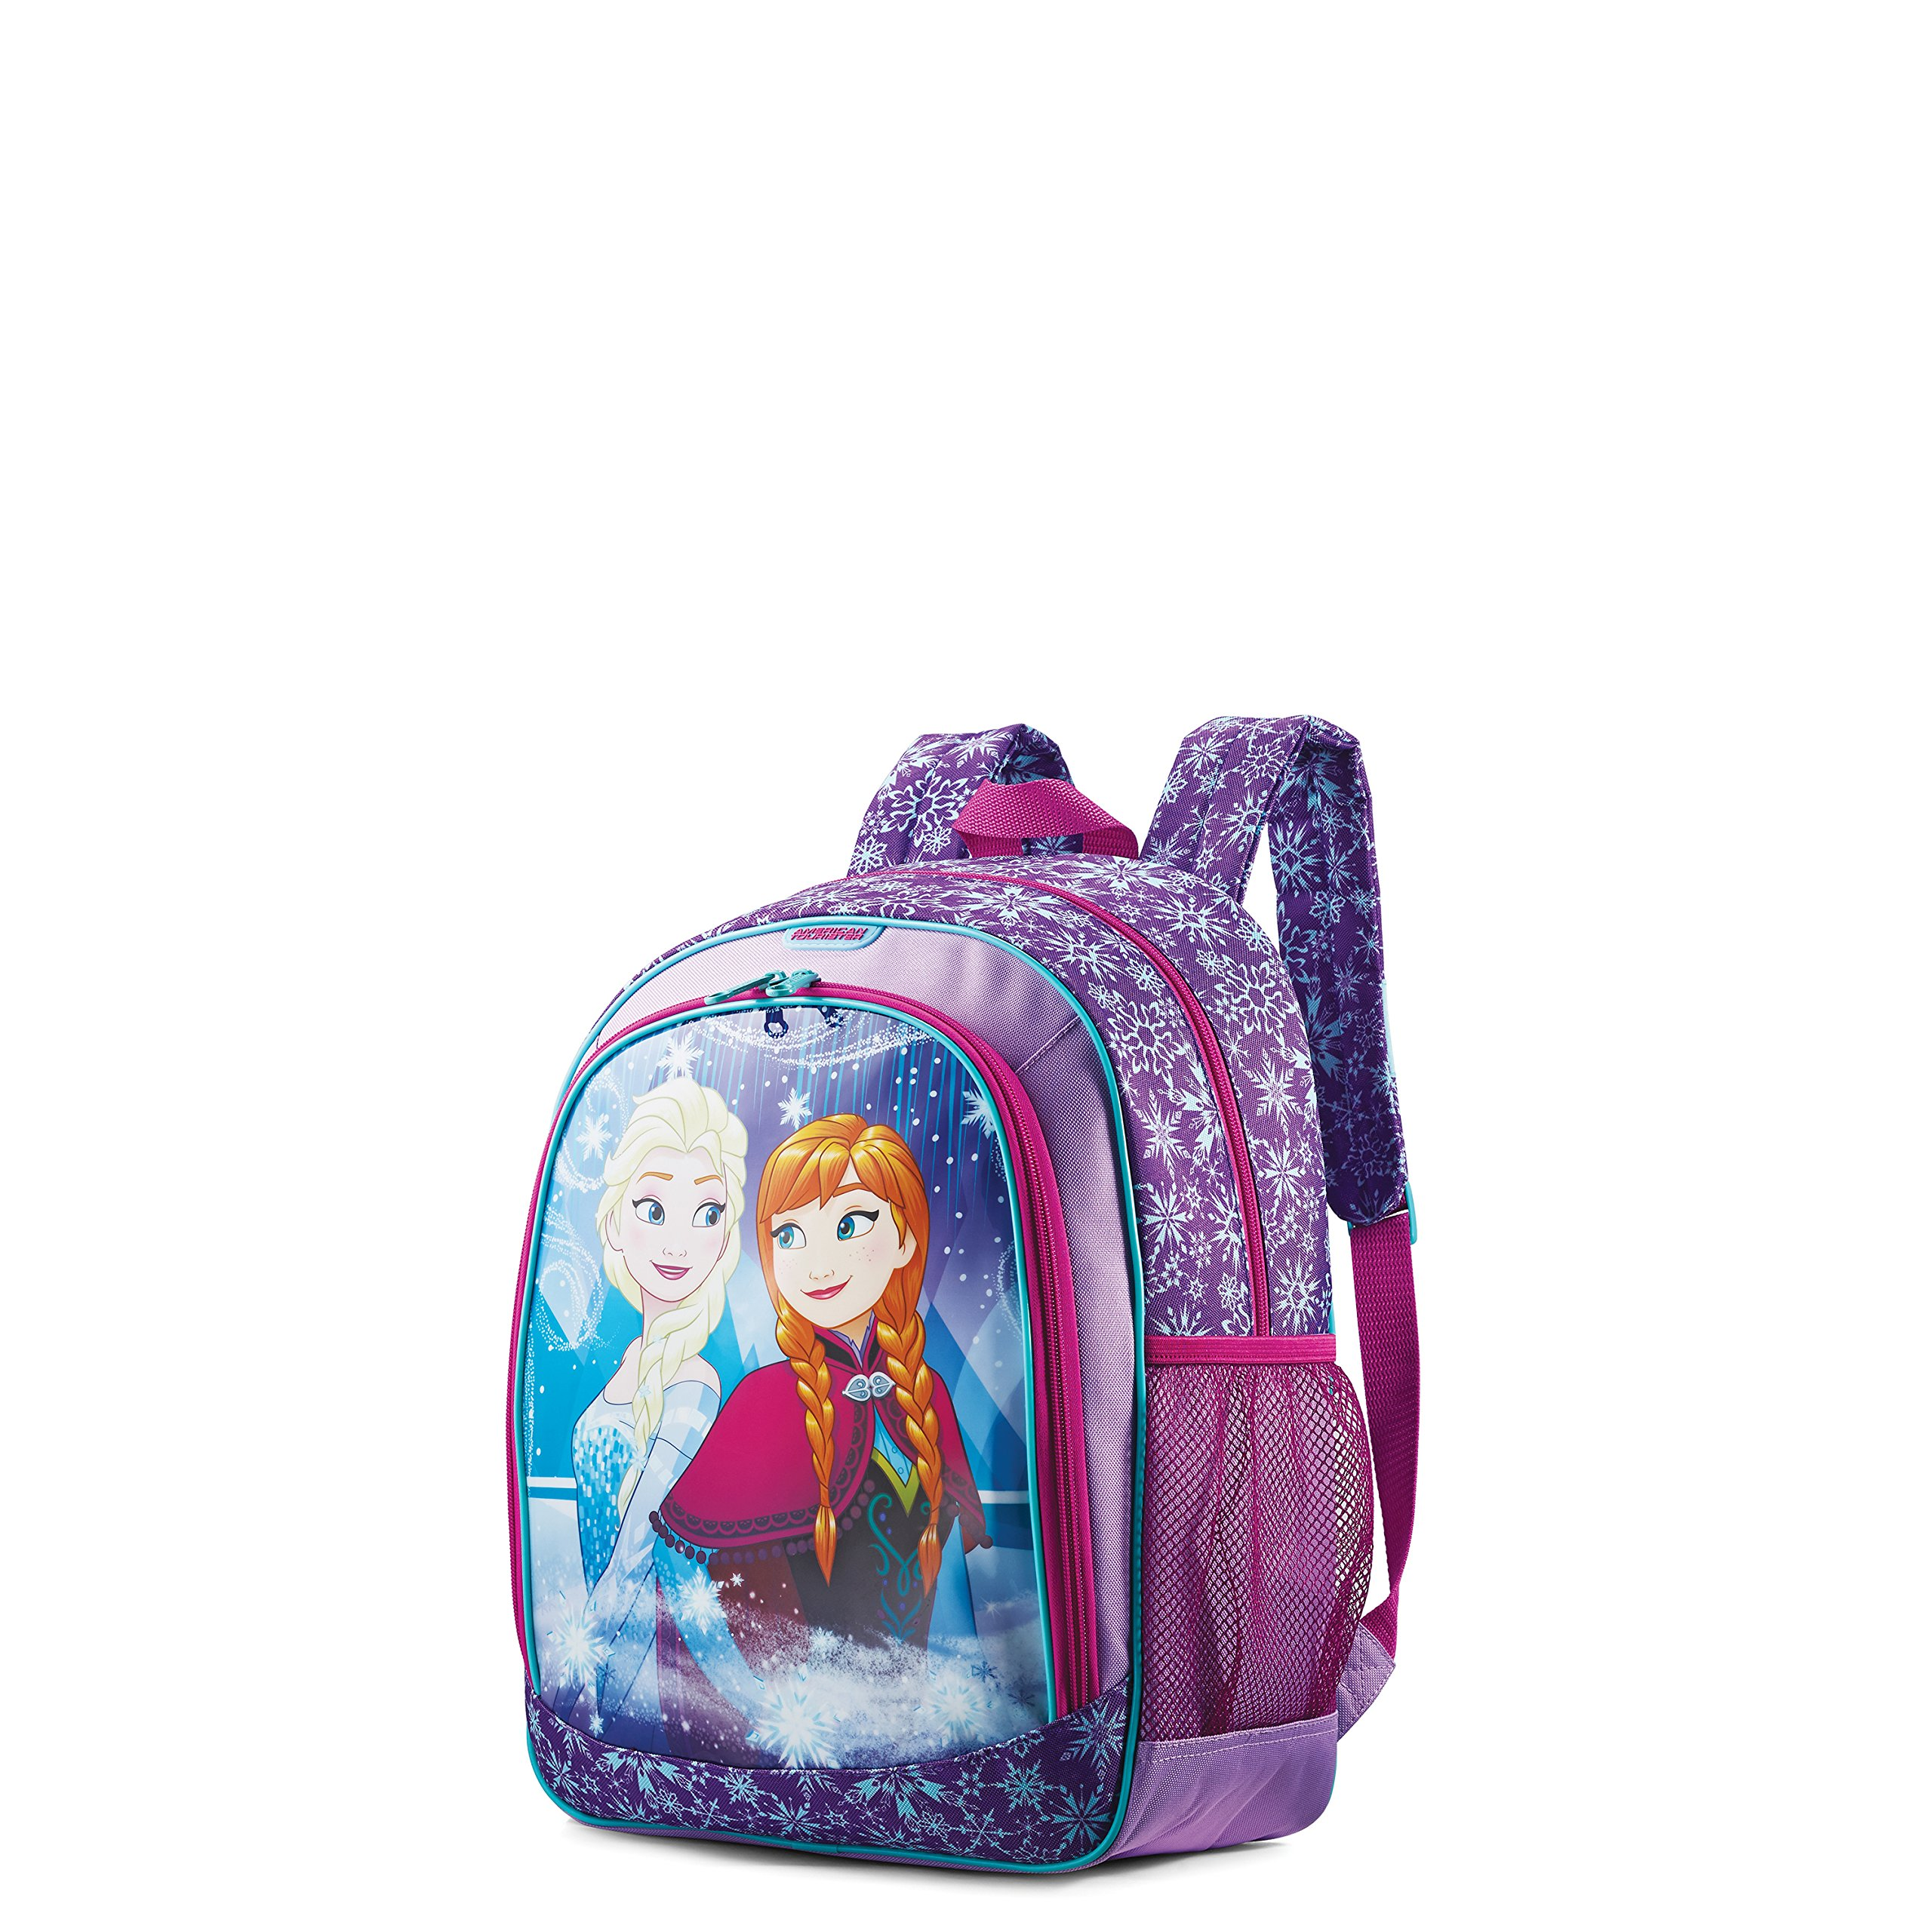 American Tourister Kids' Disney Children's Backpack Frozen, One Size